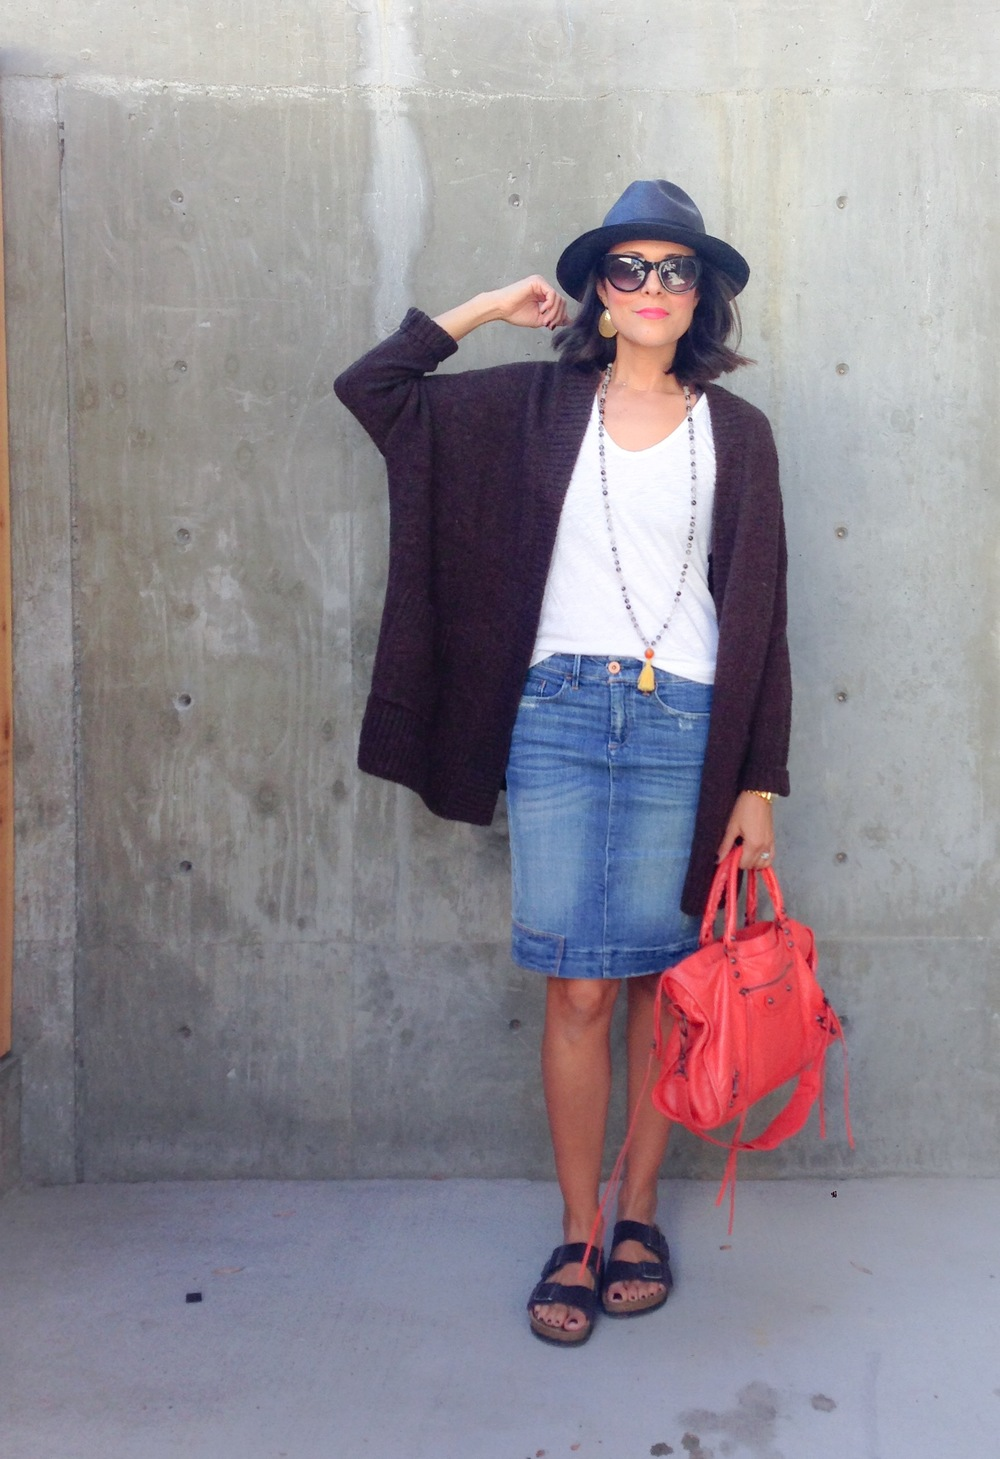 Sweater $59.90  |  Tank $24.95  |  Birkenstocks  $129.95  |  Handbag  Mala Beads  |  Hat similar here $65  |  Sunglasses $125